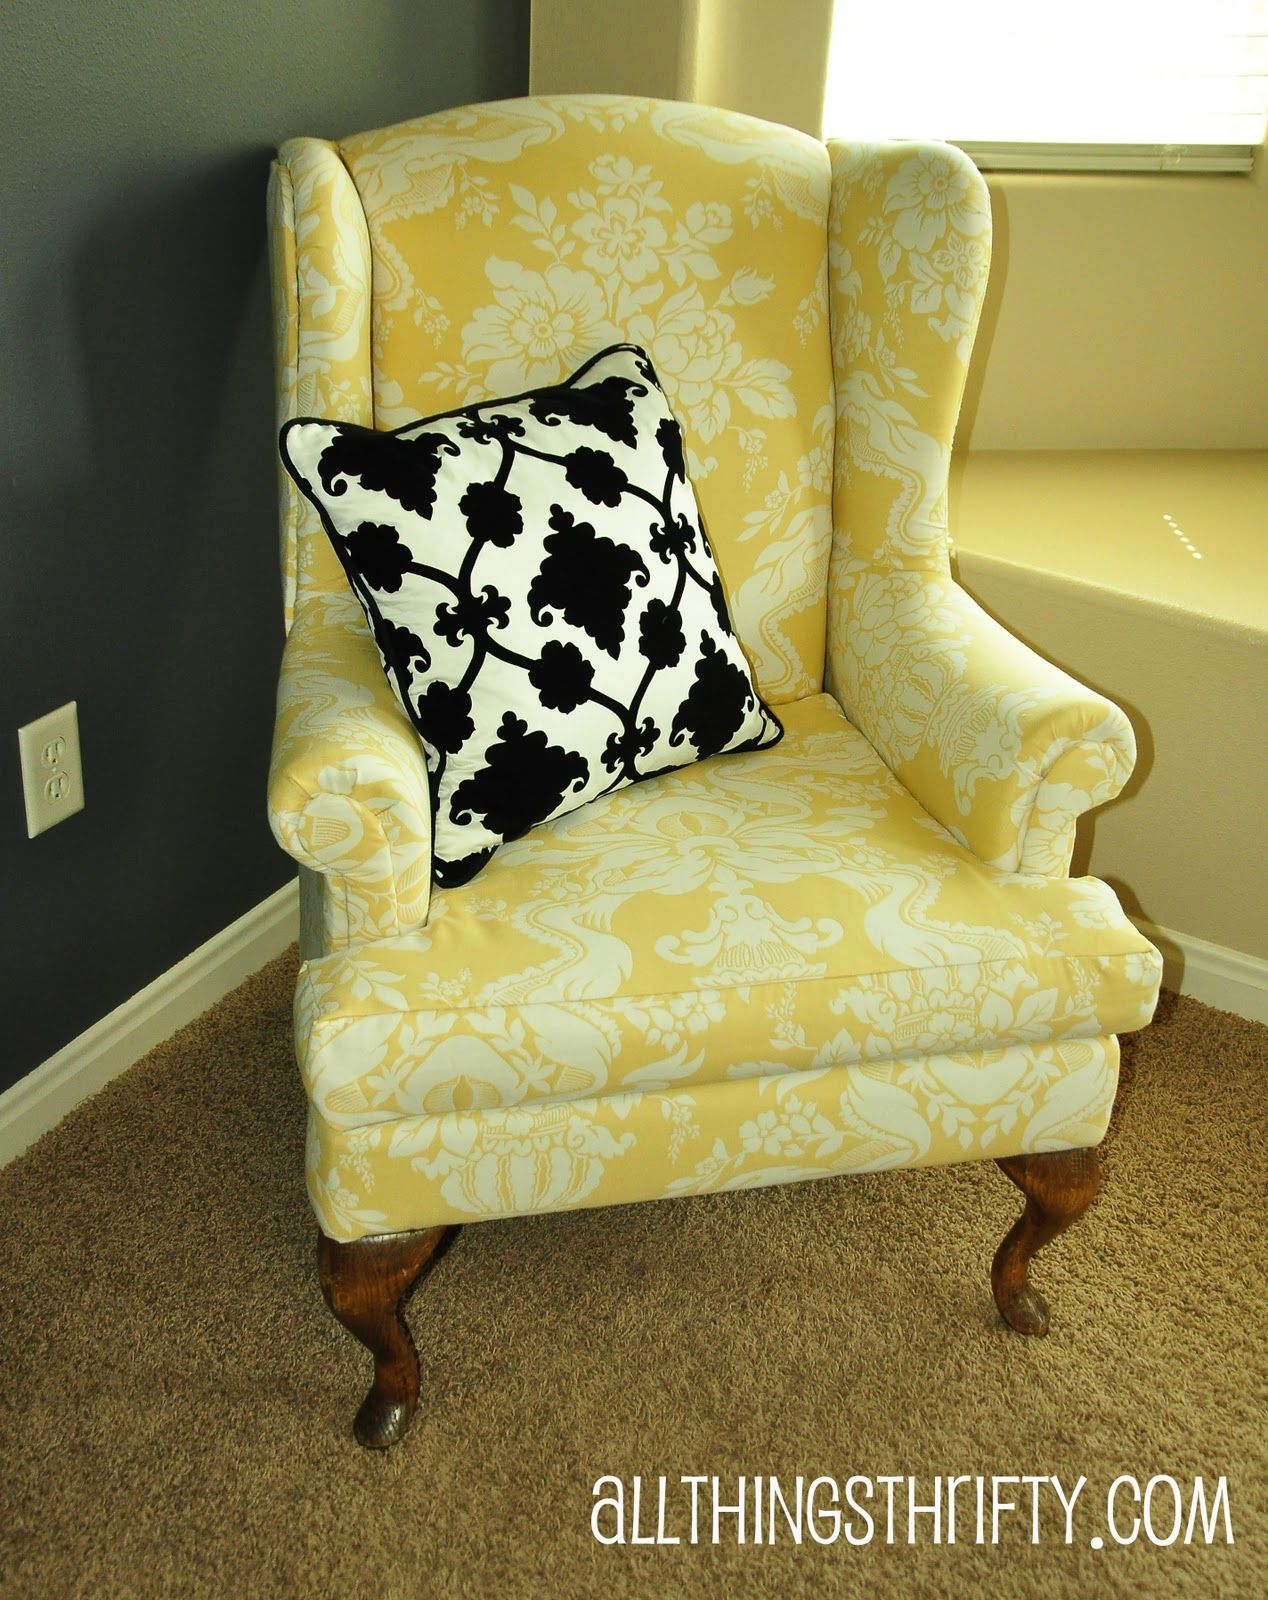 upholstering a wing back chair, upholstery tips | chair upholstery